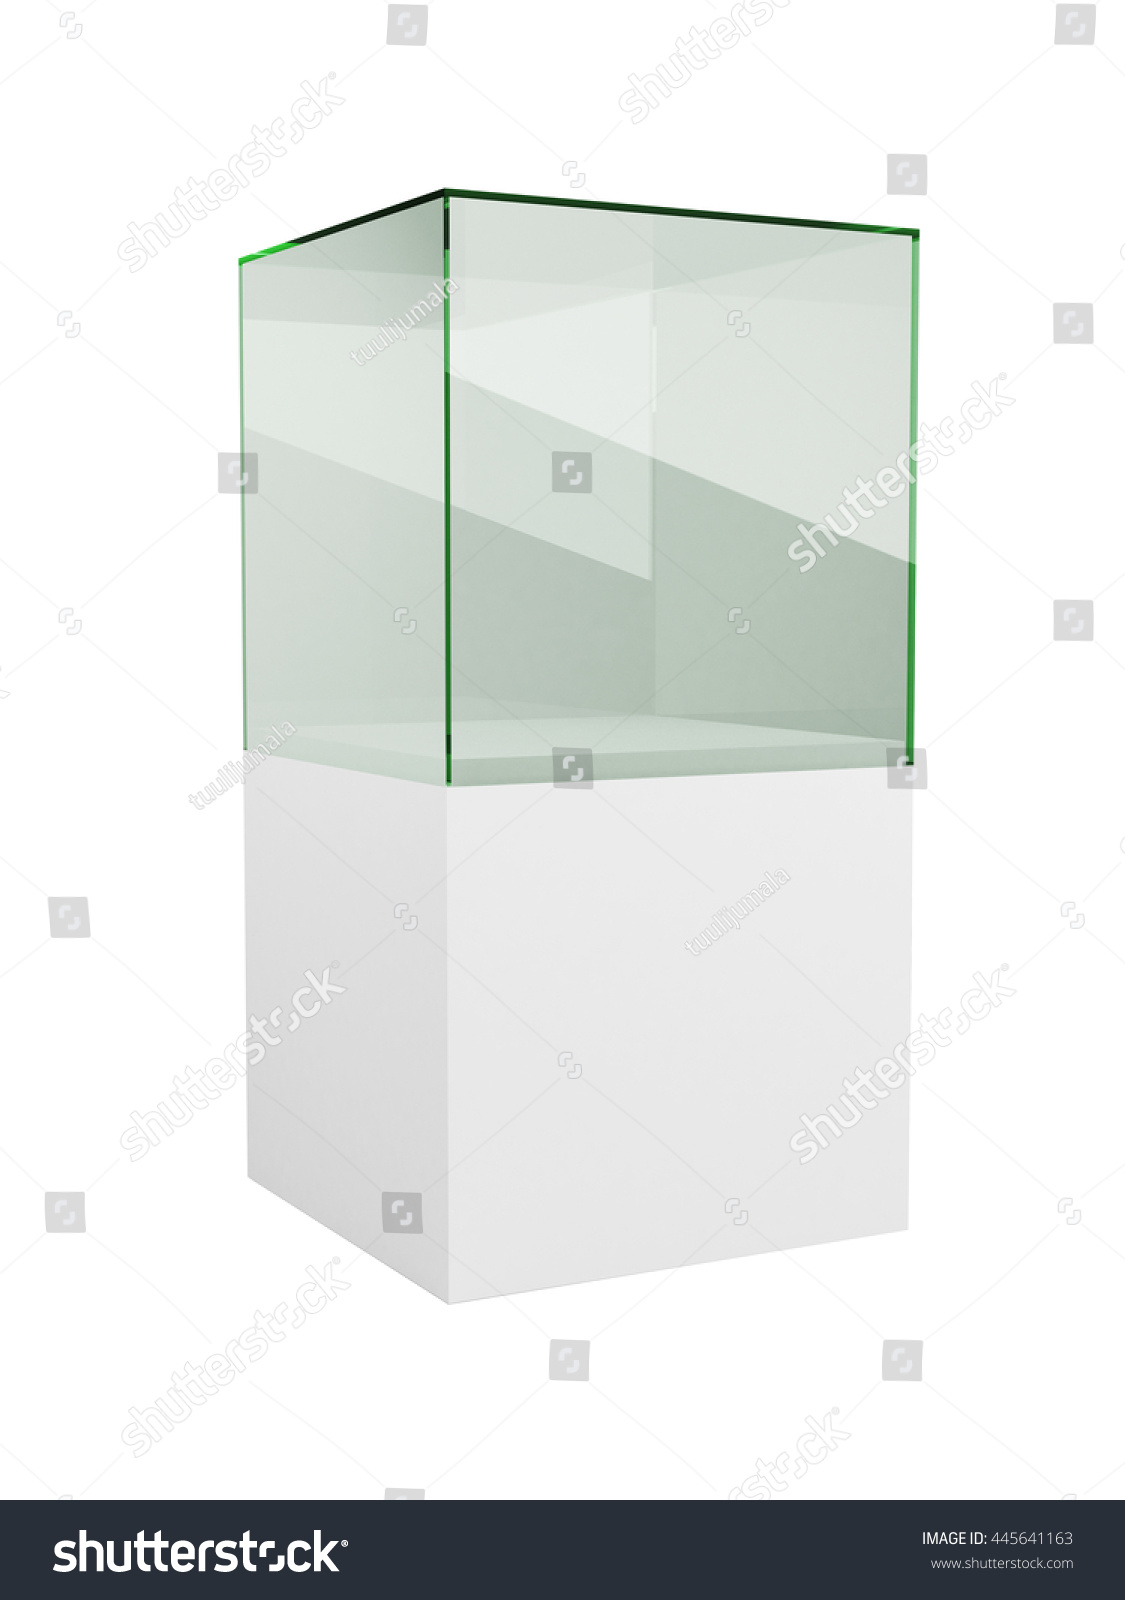 glass display cabinet isolated on white background 3d rendering of the empty exhibition or boutique